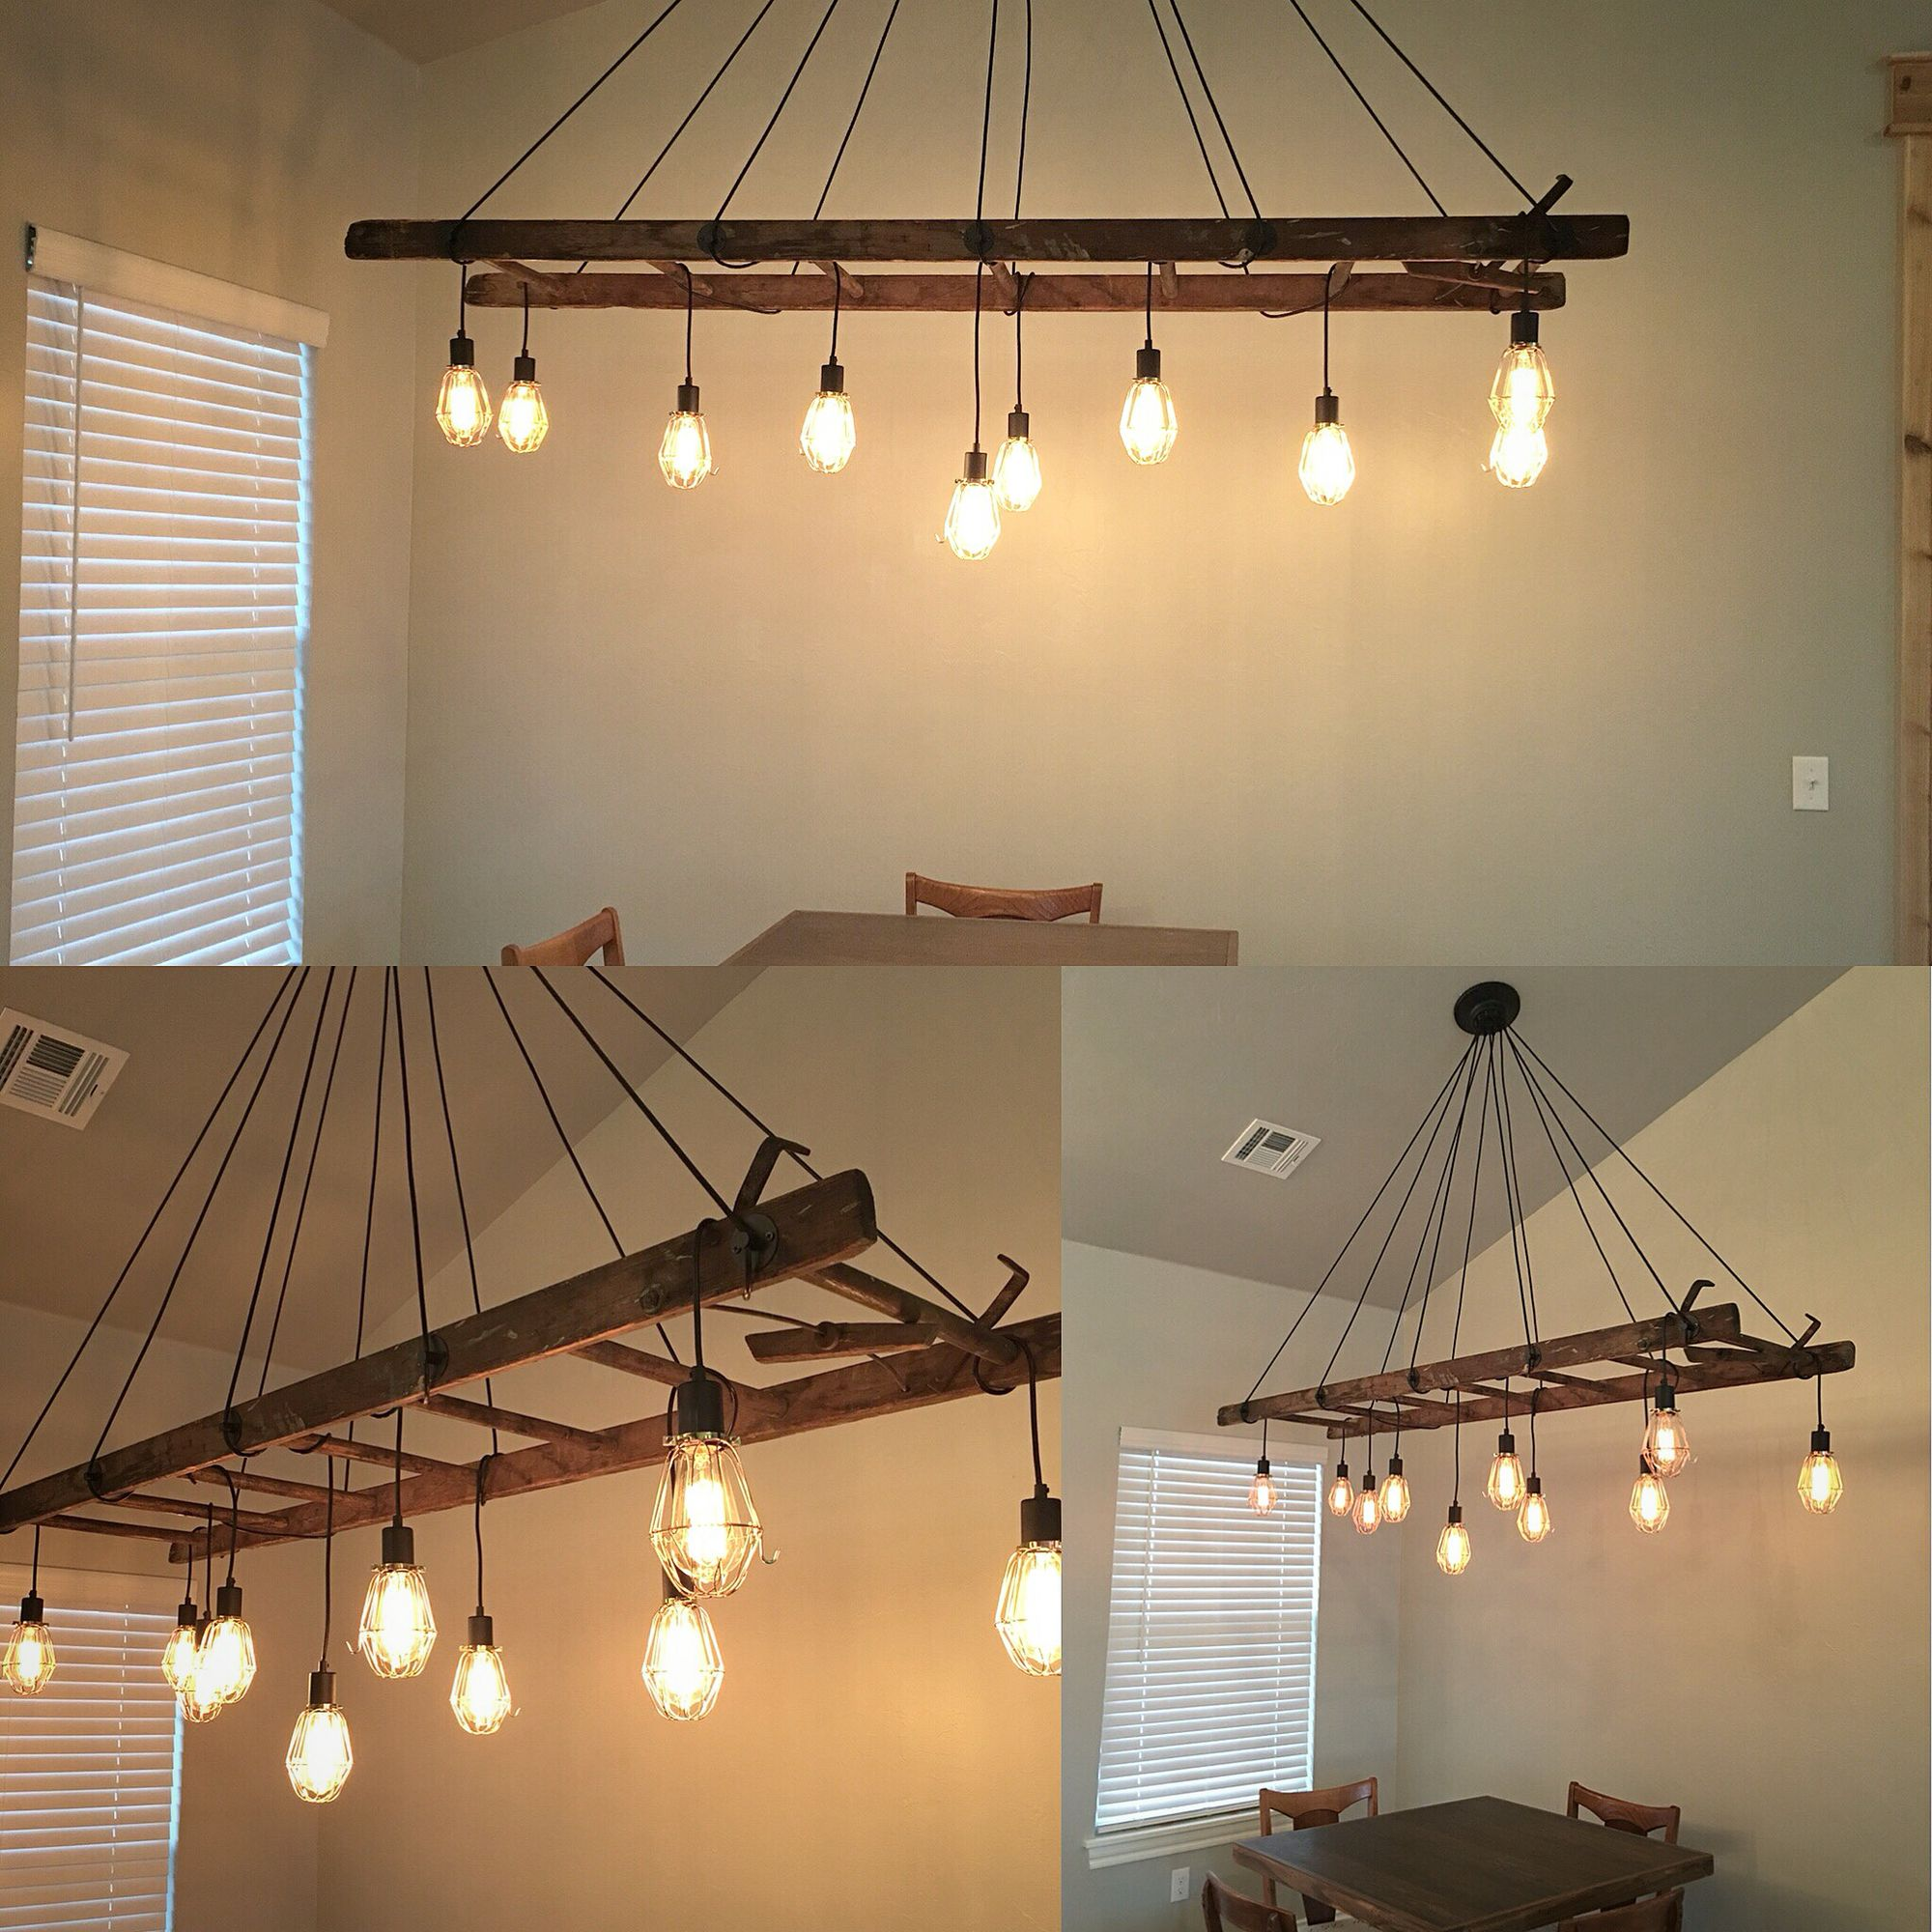 Old Wood Ladder Turned Into A Chandelier. By Kelli Potts